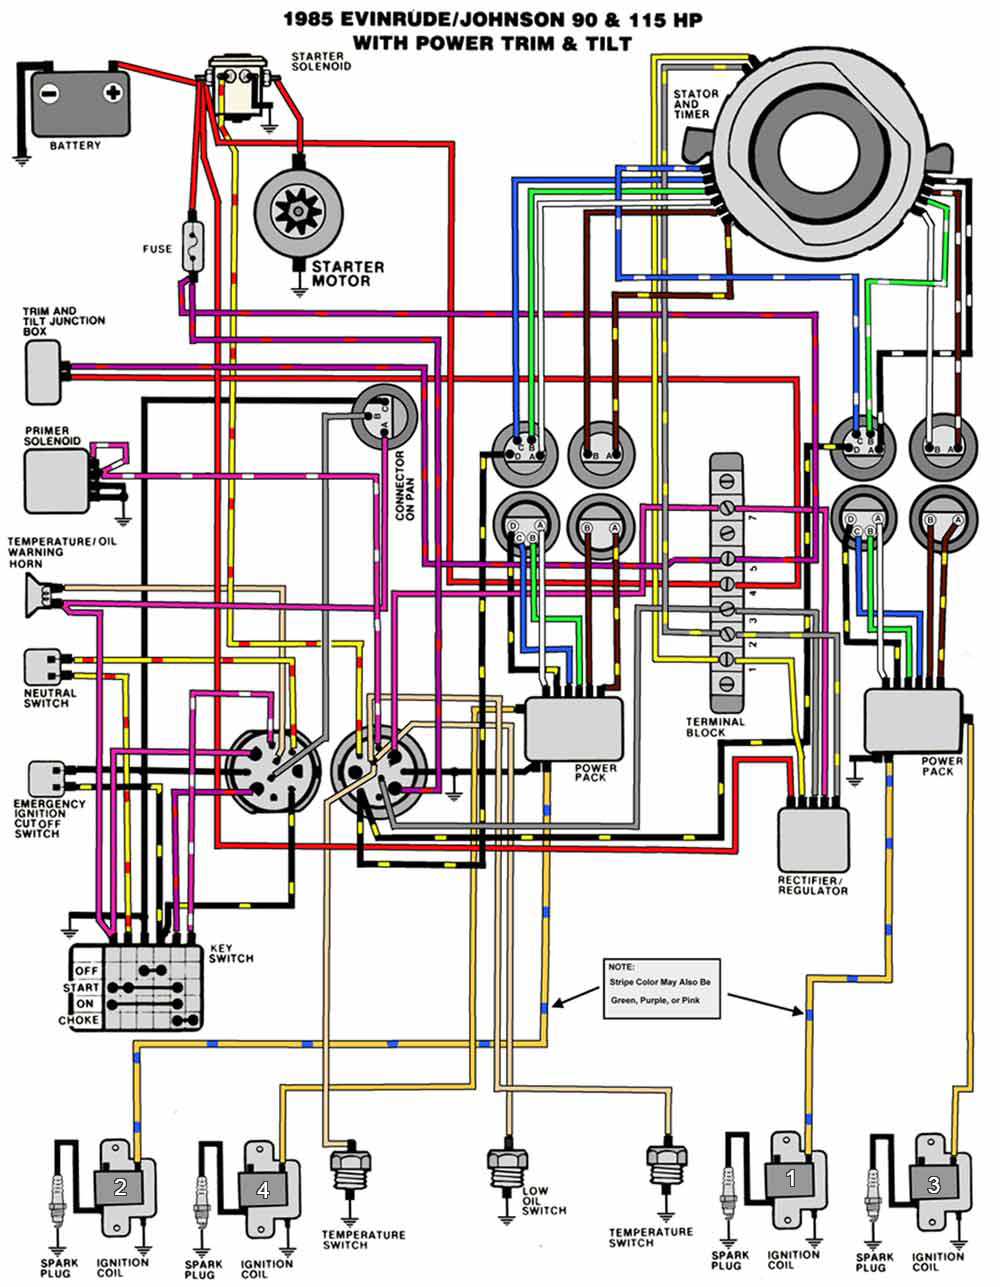 1985_90_115TnT mercury trim gauge wiring diagram trim motor wiring diagram mariner 115 outboard wiring diagram at alyssarenee.co